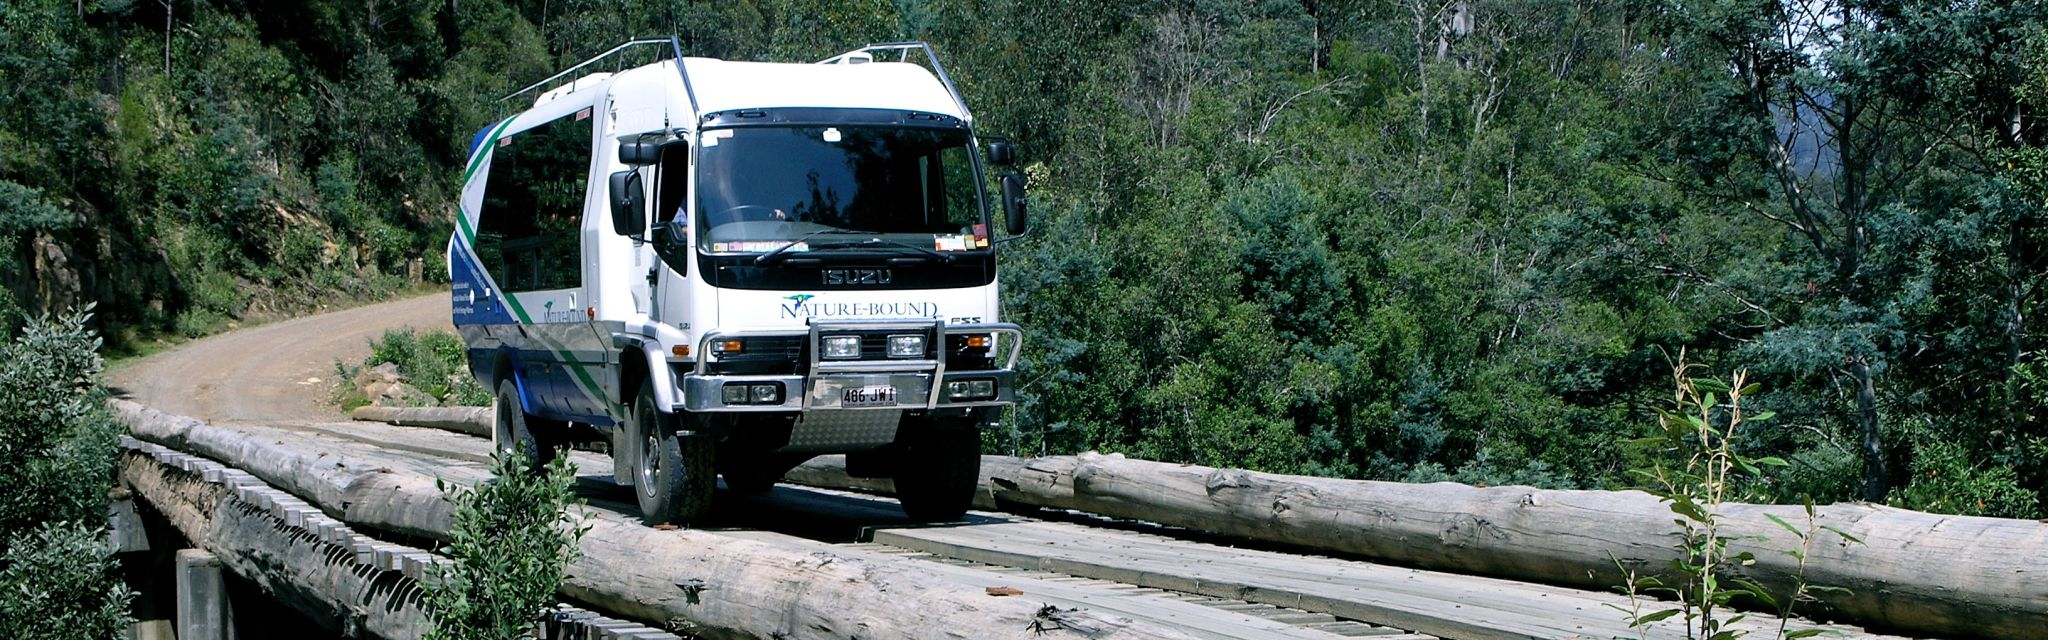 Tour Transport our bus crossing bridge into Tasmanian forests